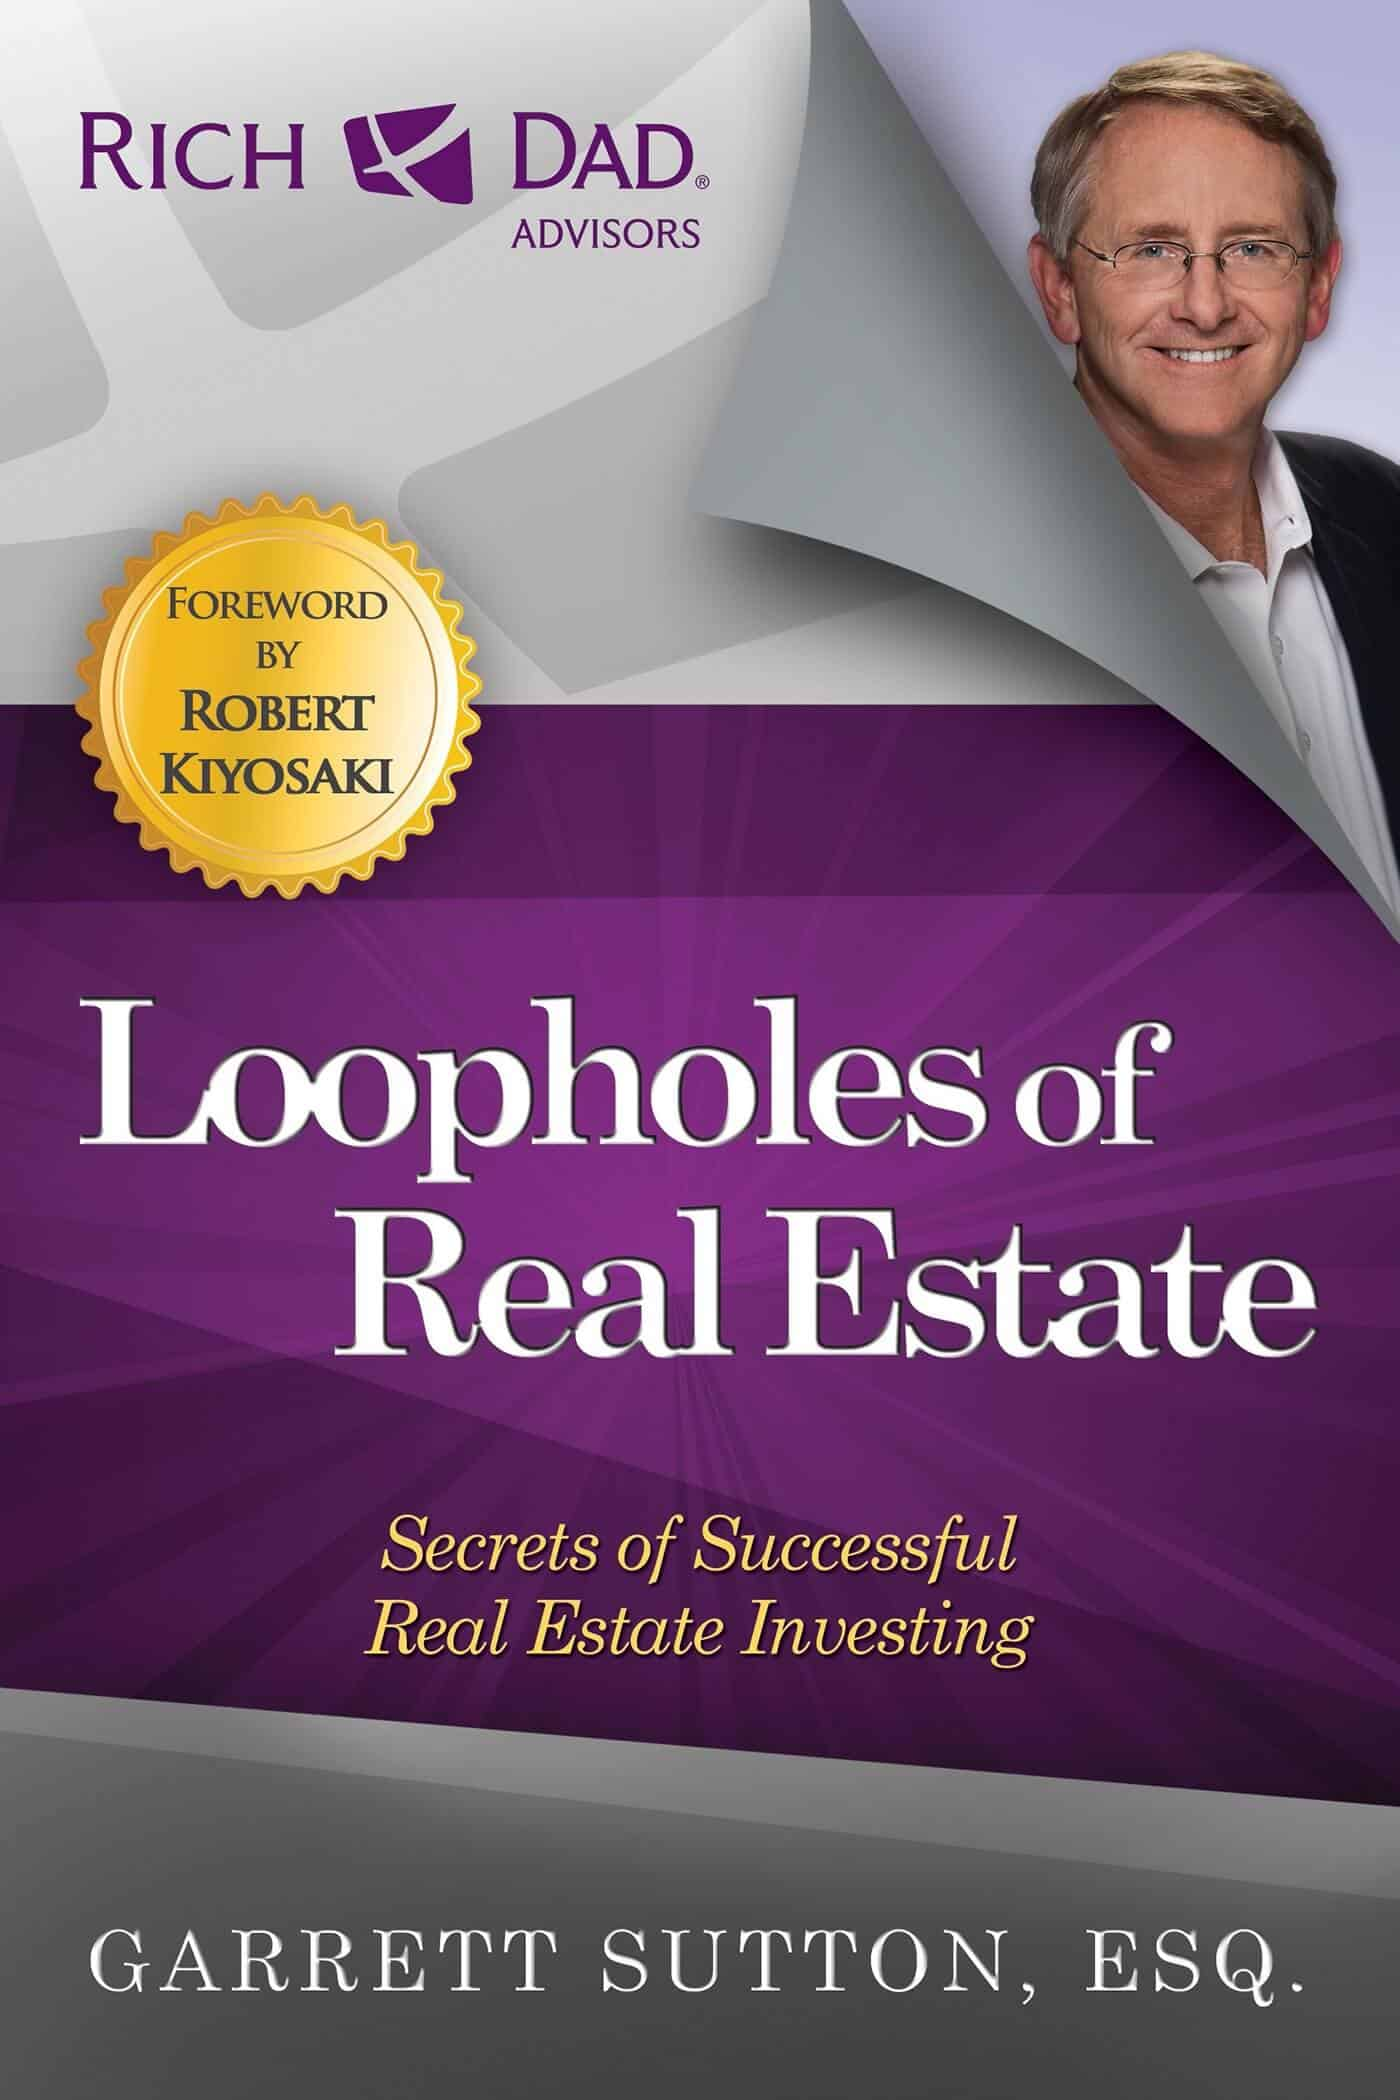 Loopholes of Real Estate Rich Dads Advisors